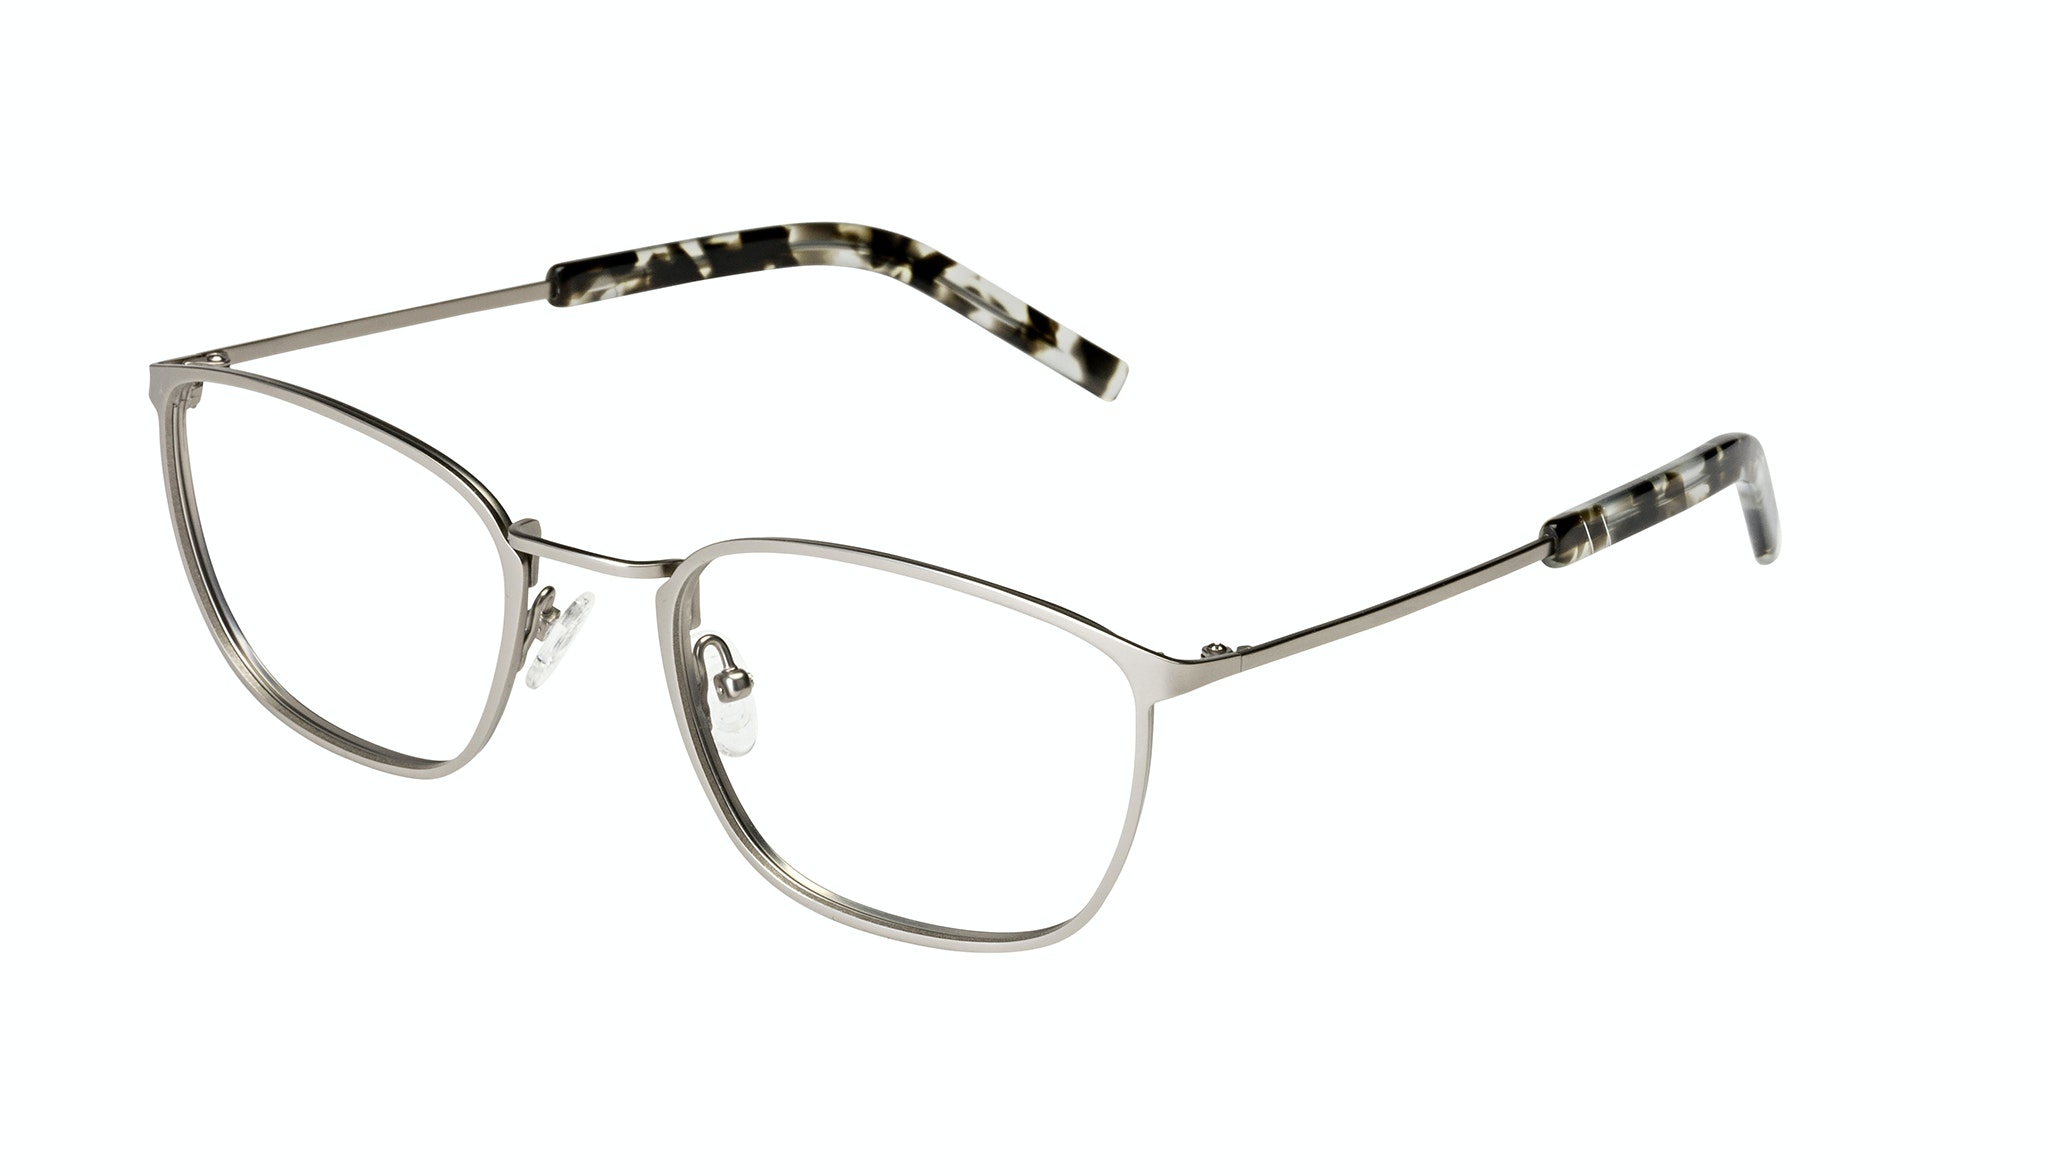 Affordable Fashion Glasses Rectangle Eyeglasses Men Edge Silver Tilt